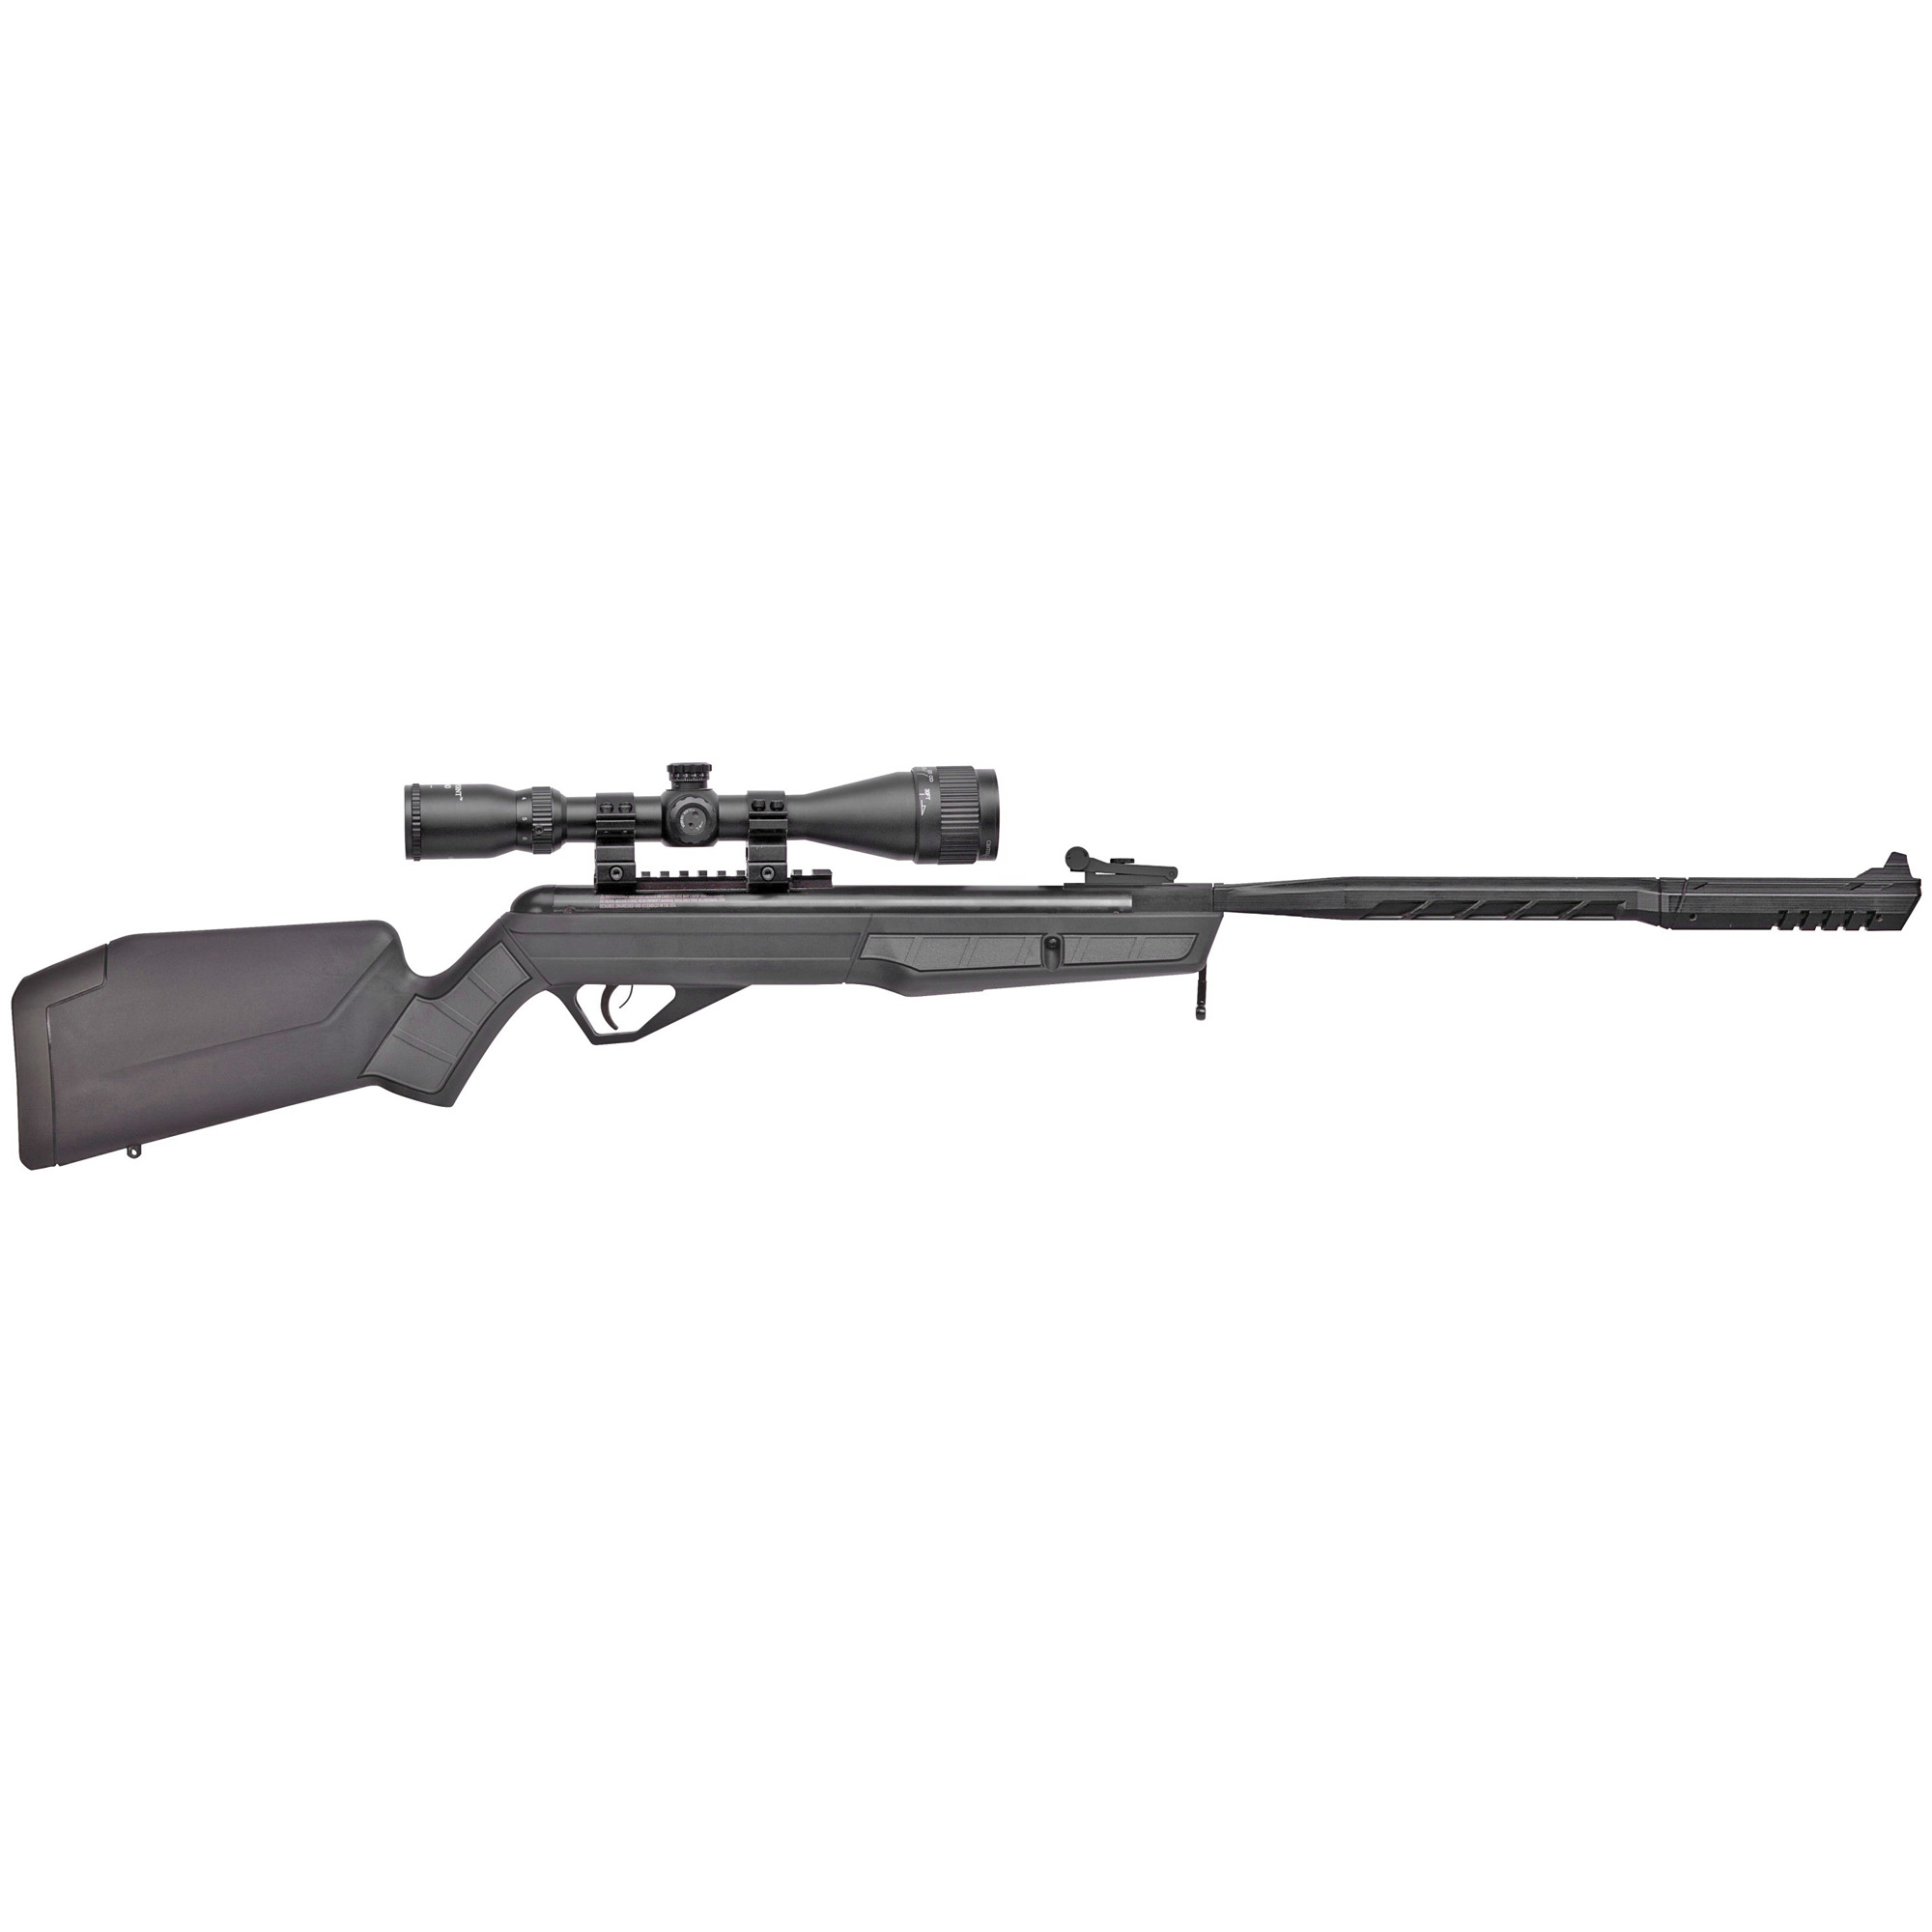 This Air Rifle has an Ergonomic stock with soft touch inserts and a rubber recoil pad. It features an adjustable rear/fixed front sight and Two-stage Clean Break Trigger(TM).